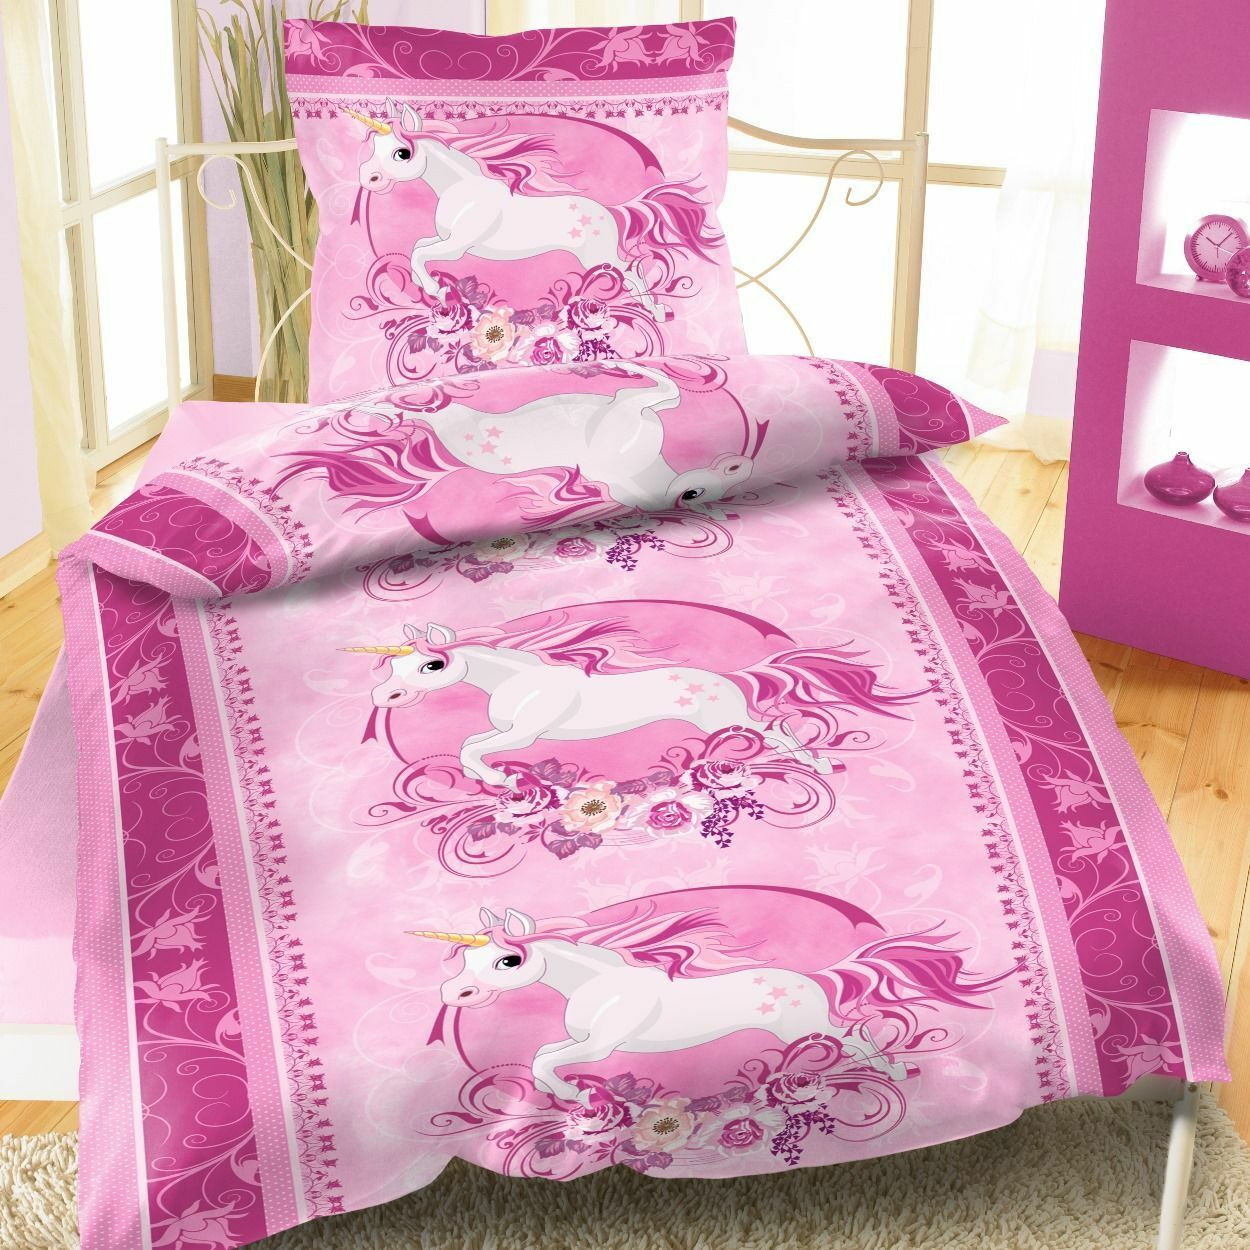 mikrofaser bettw sche 135x200 cm 2 teilig einhorn unicorn pferd rosa eur 9 95 picclick de. Black Bedroom Furniture Sets. Home Design Ideas